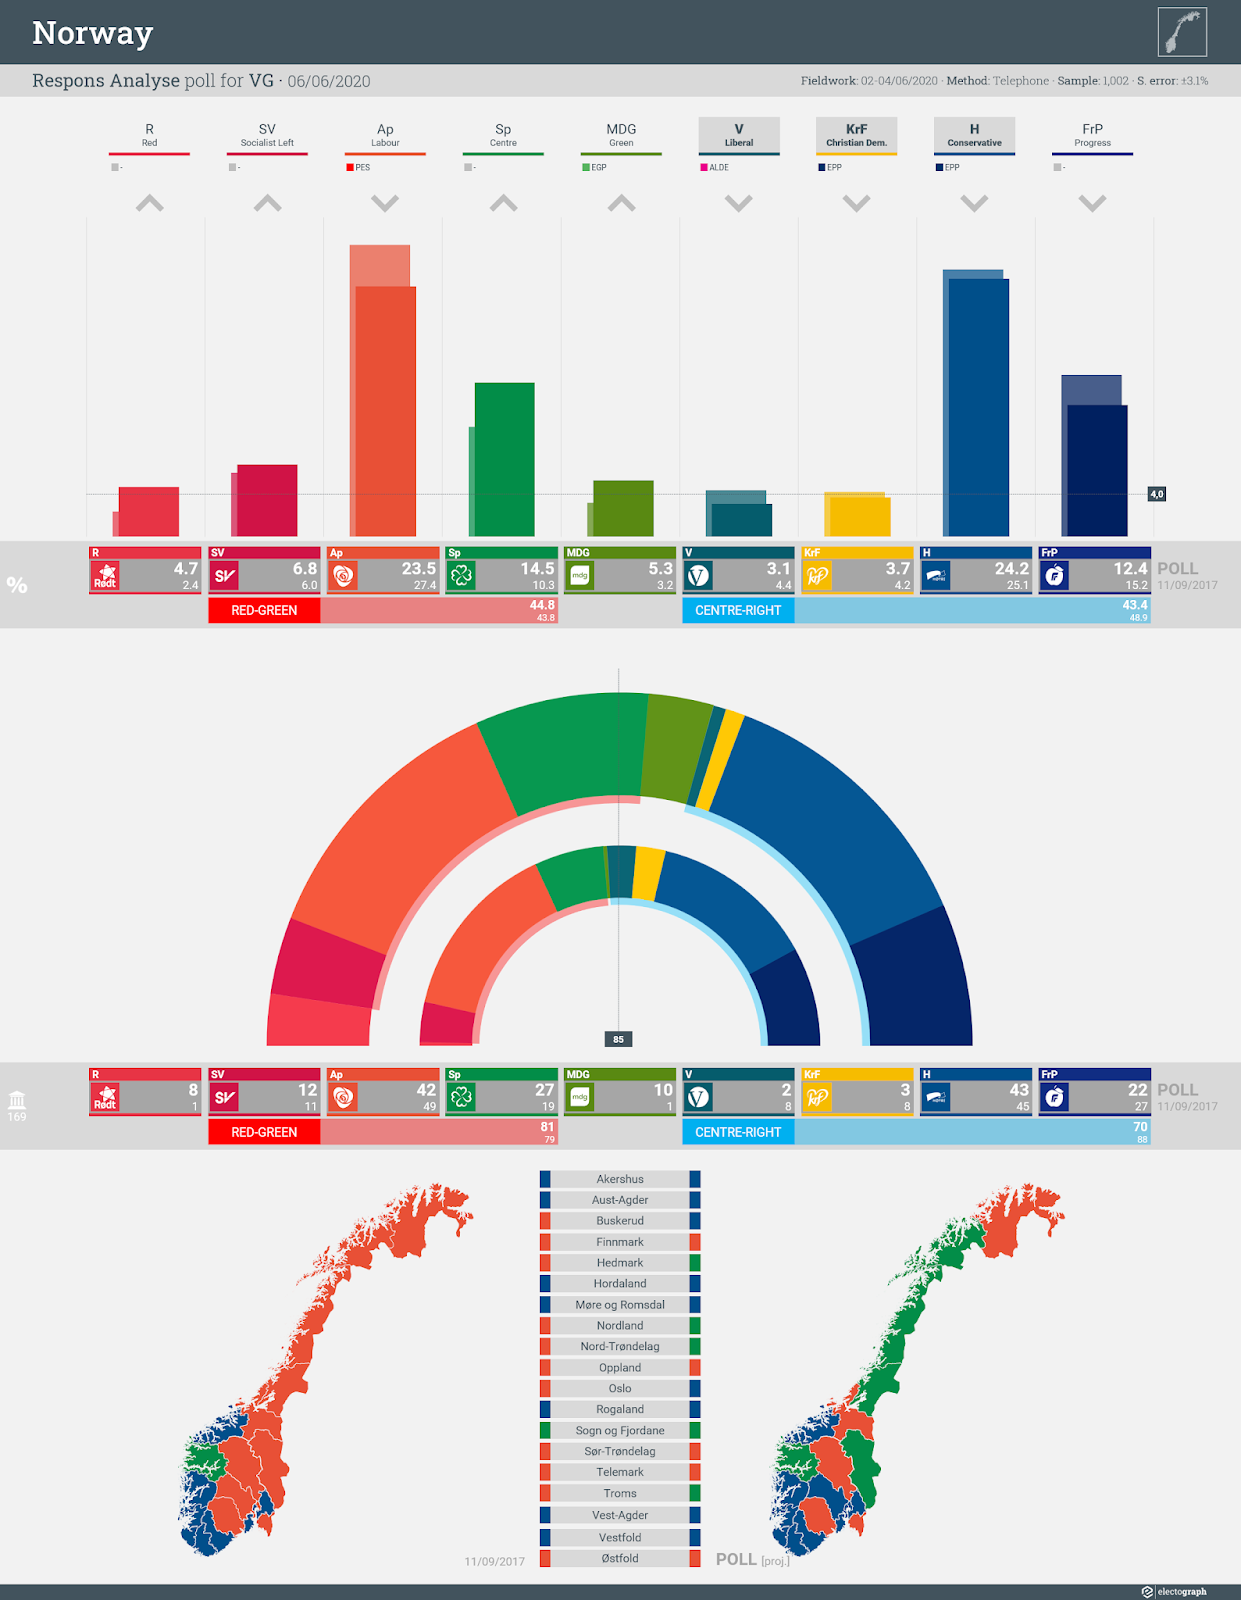 NORWAY: Respons Analyse poll chart for VG, 6 June 2020